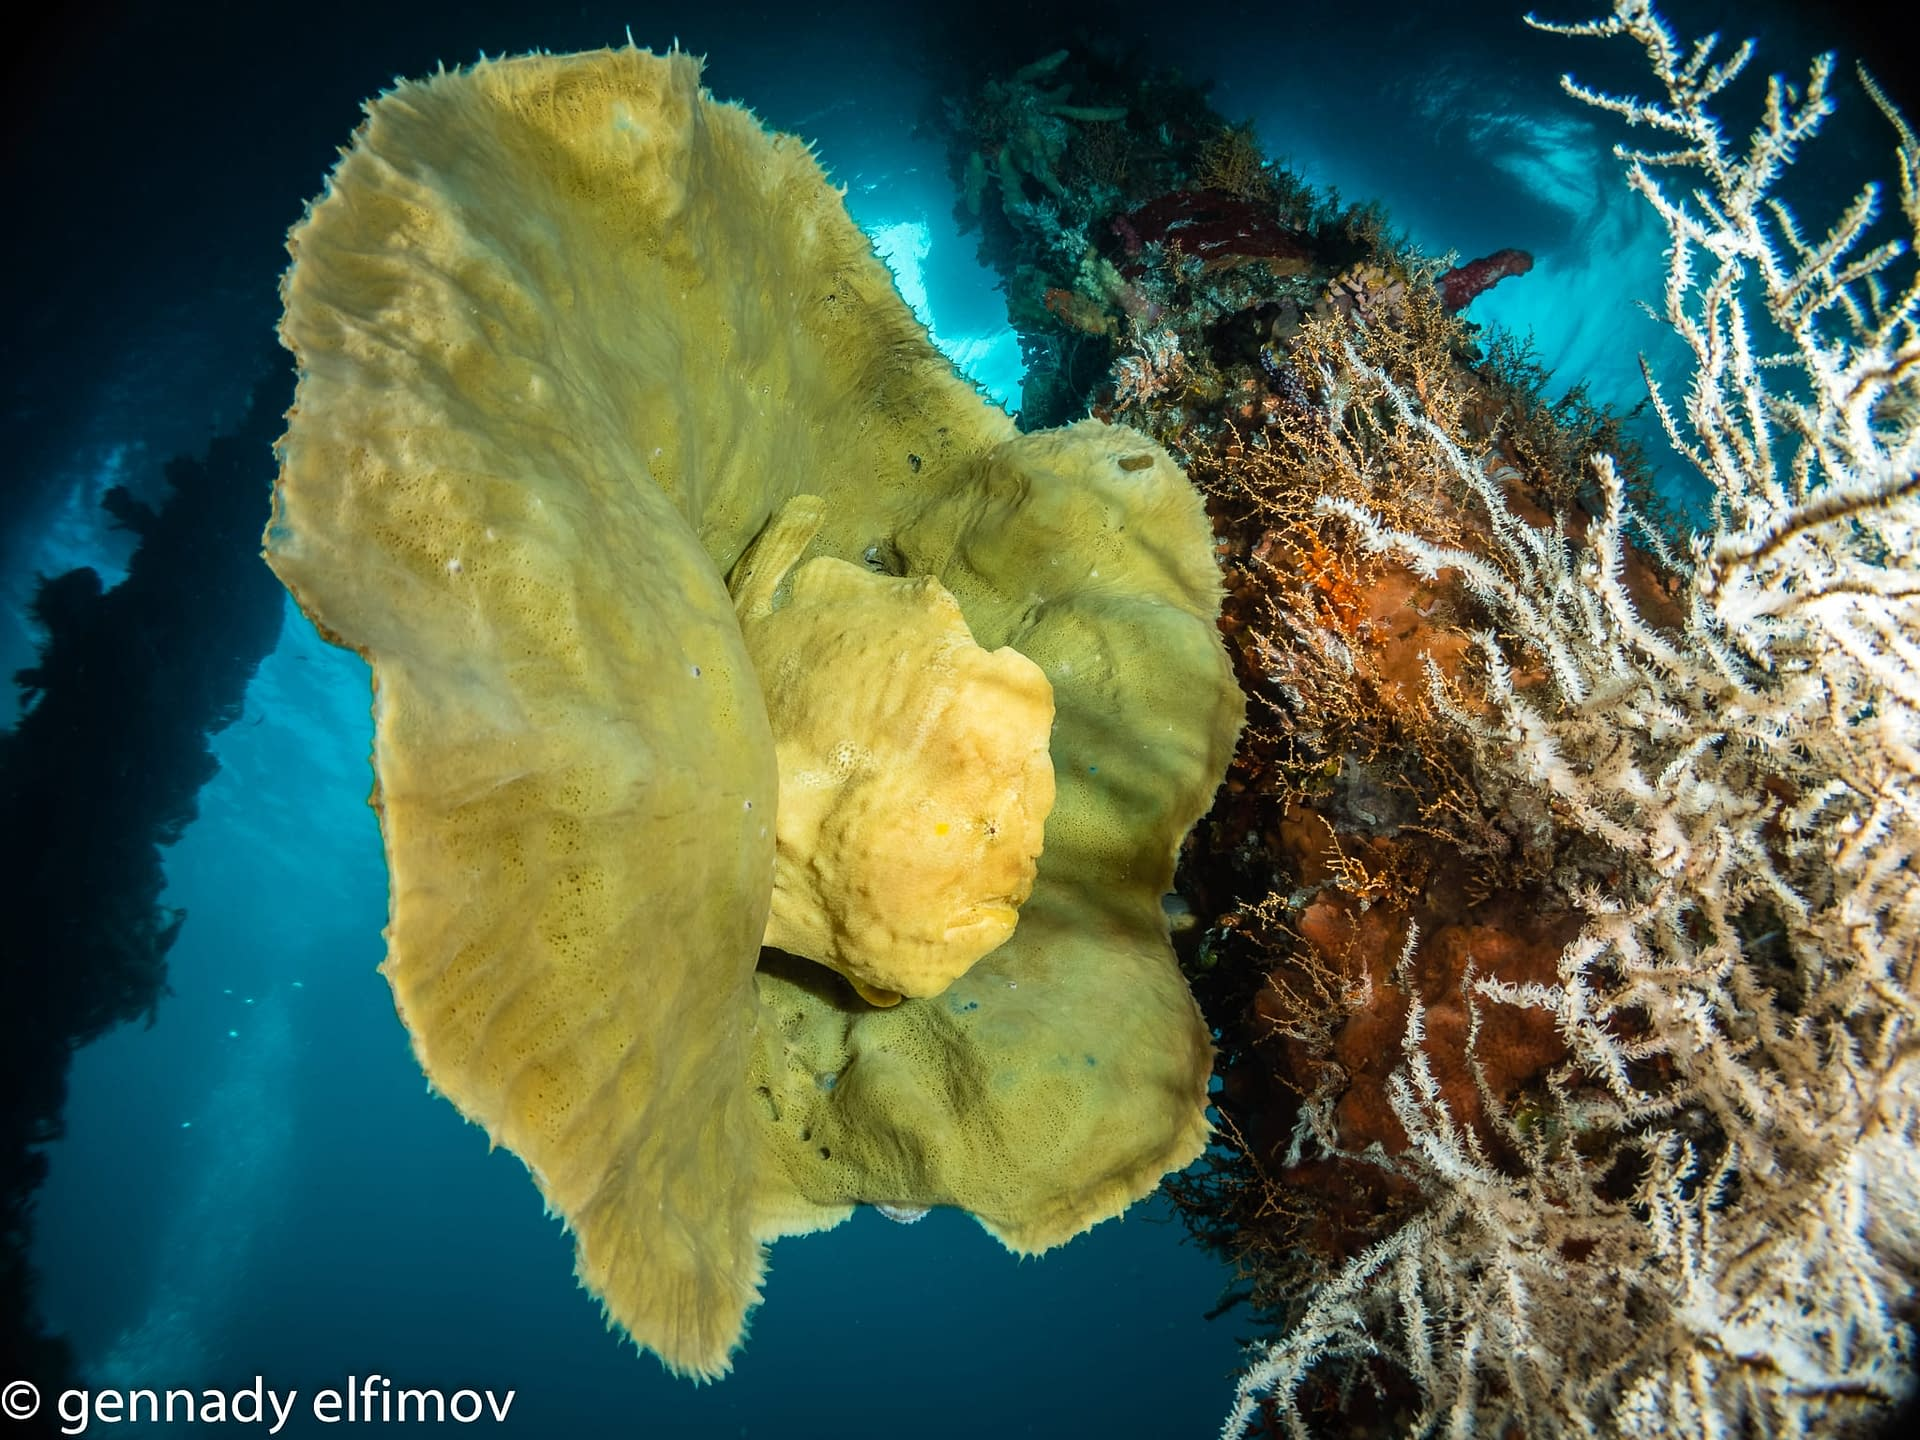 Frogfish on Sponge at Pier - Guest Gallery - Gennady Elfimov - Alami Alor Dive Resort